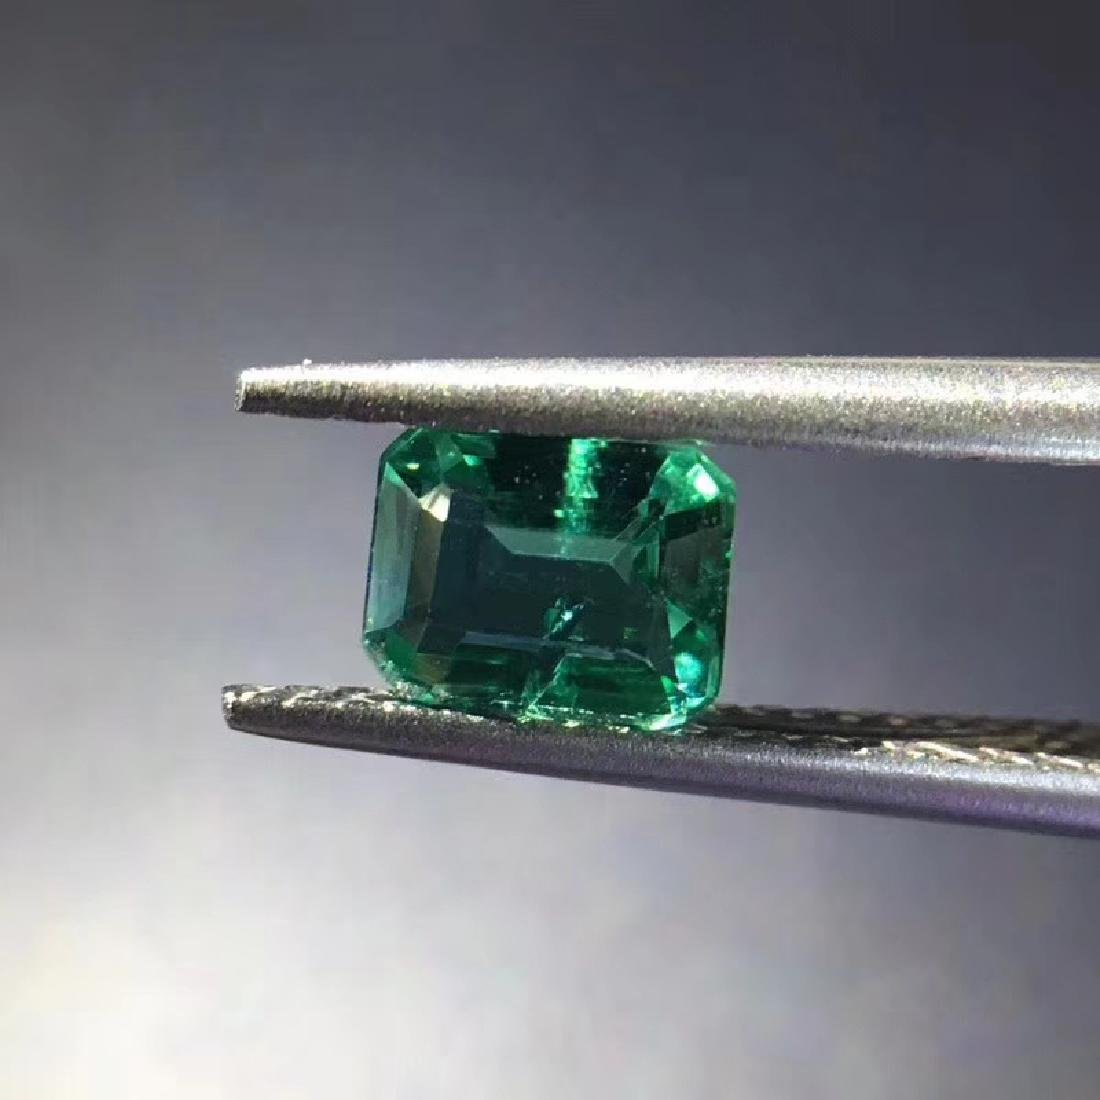 0.74 ct Emerald 5.8*4.5*3.4 mm square Cut